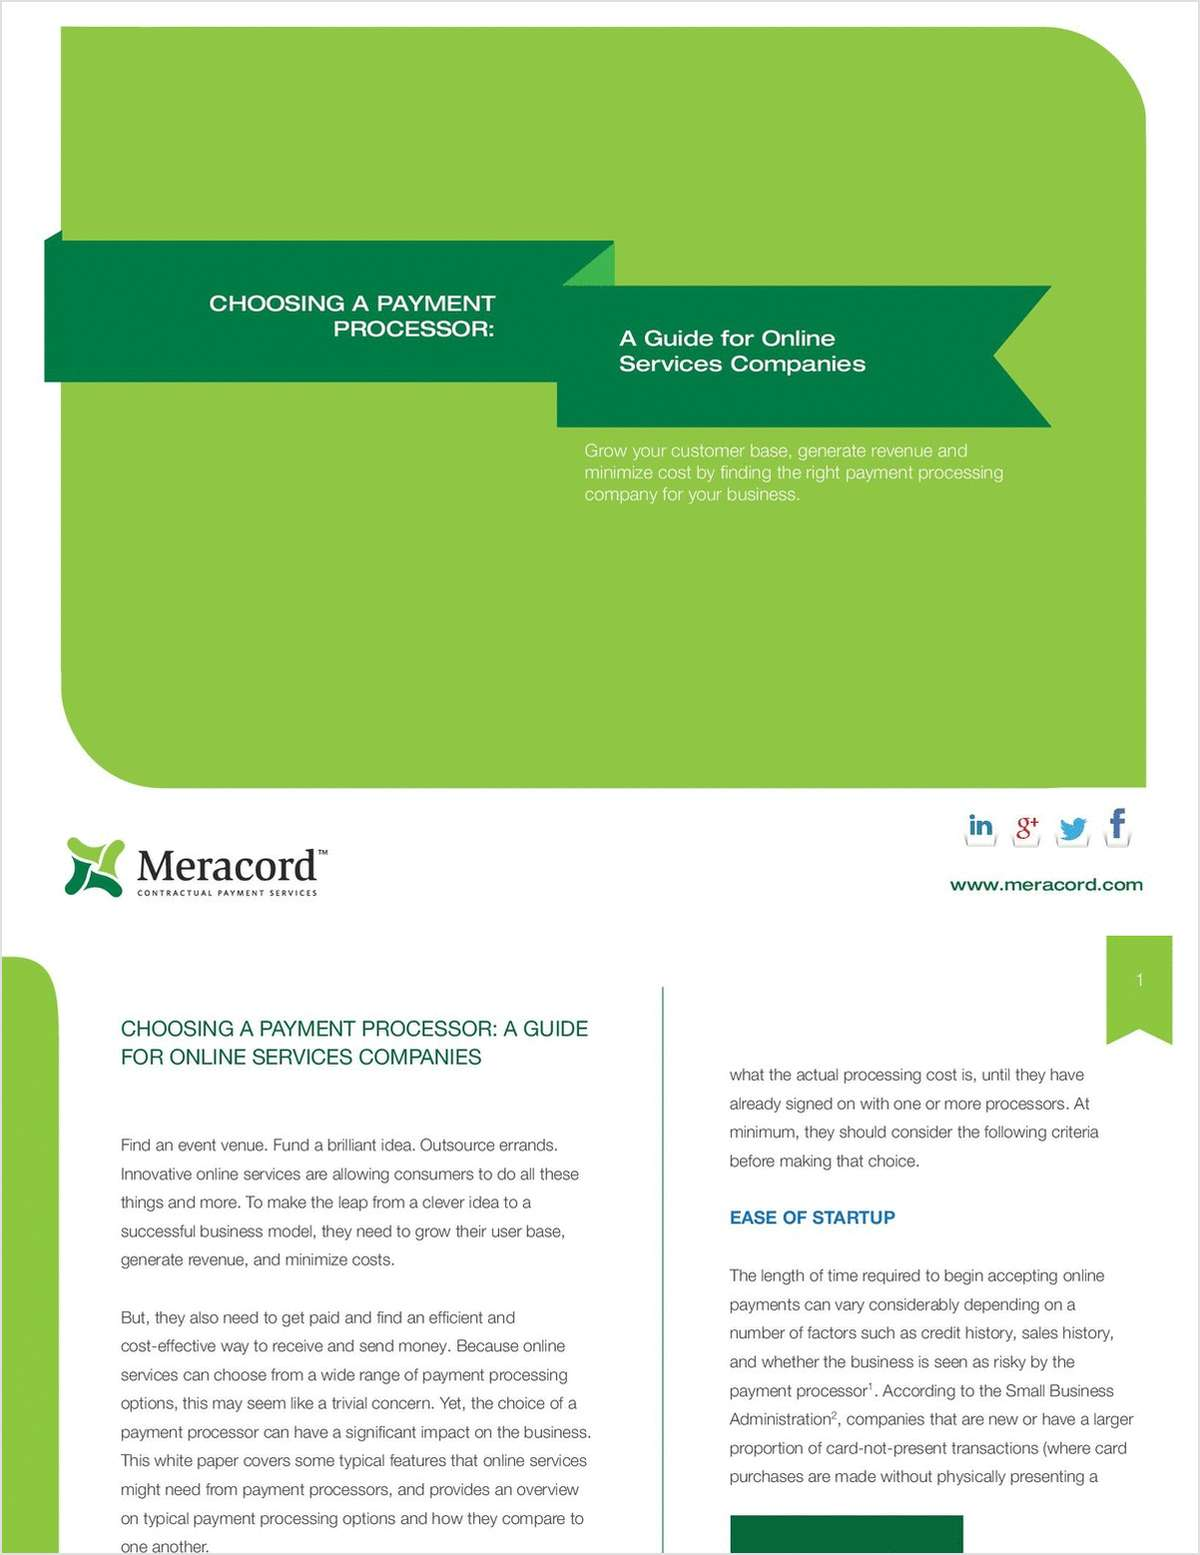 Choosing a Payment Processor: A Guide for Online Services Companies